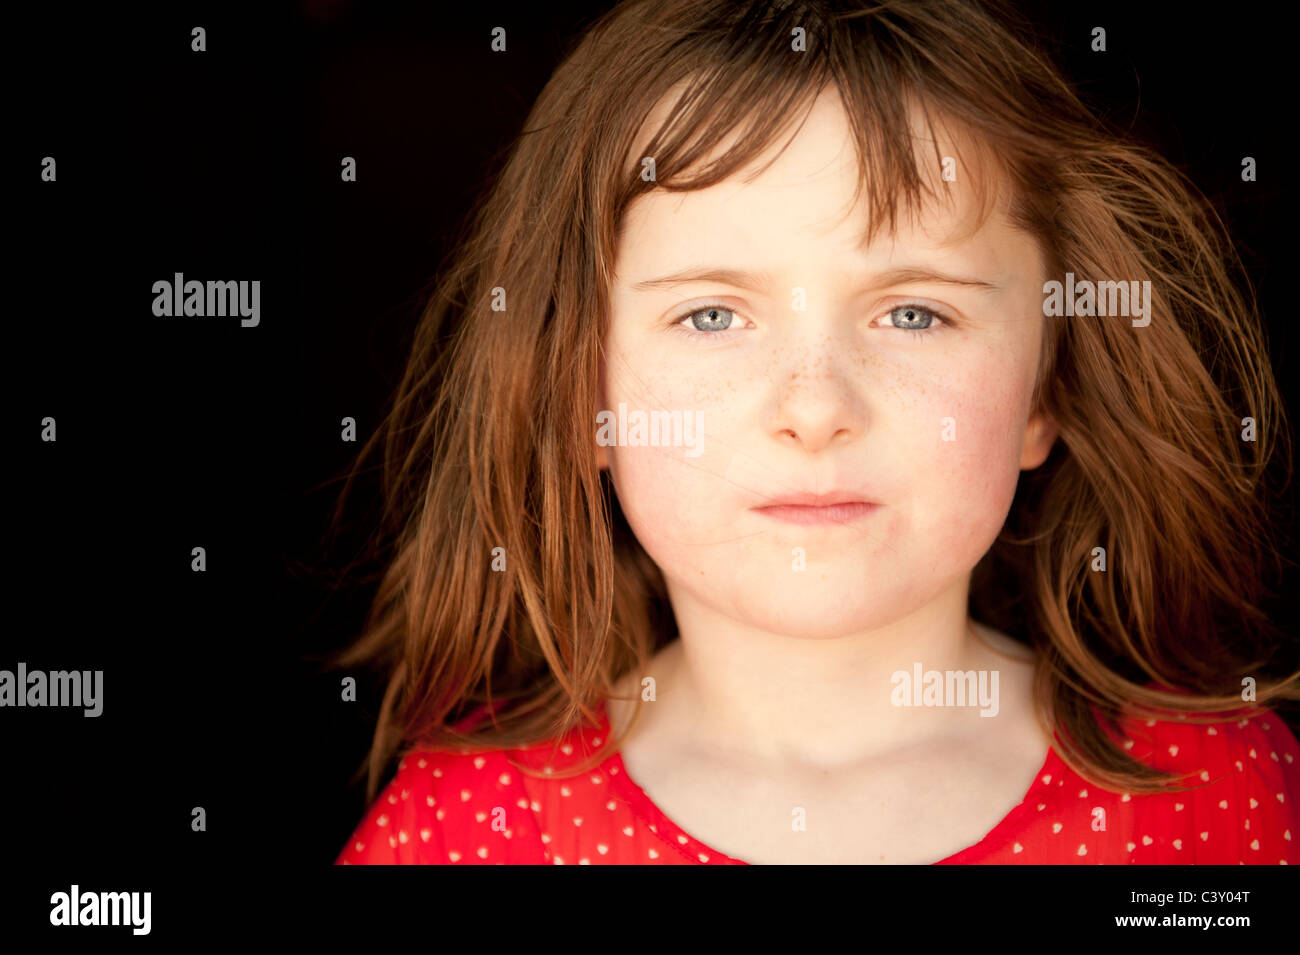 little girl looking at camera with serious facial expression - Stock Image